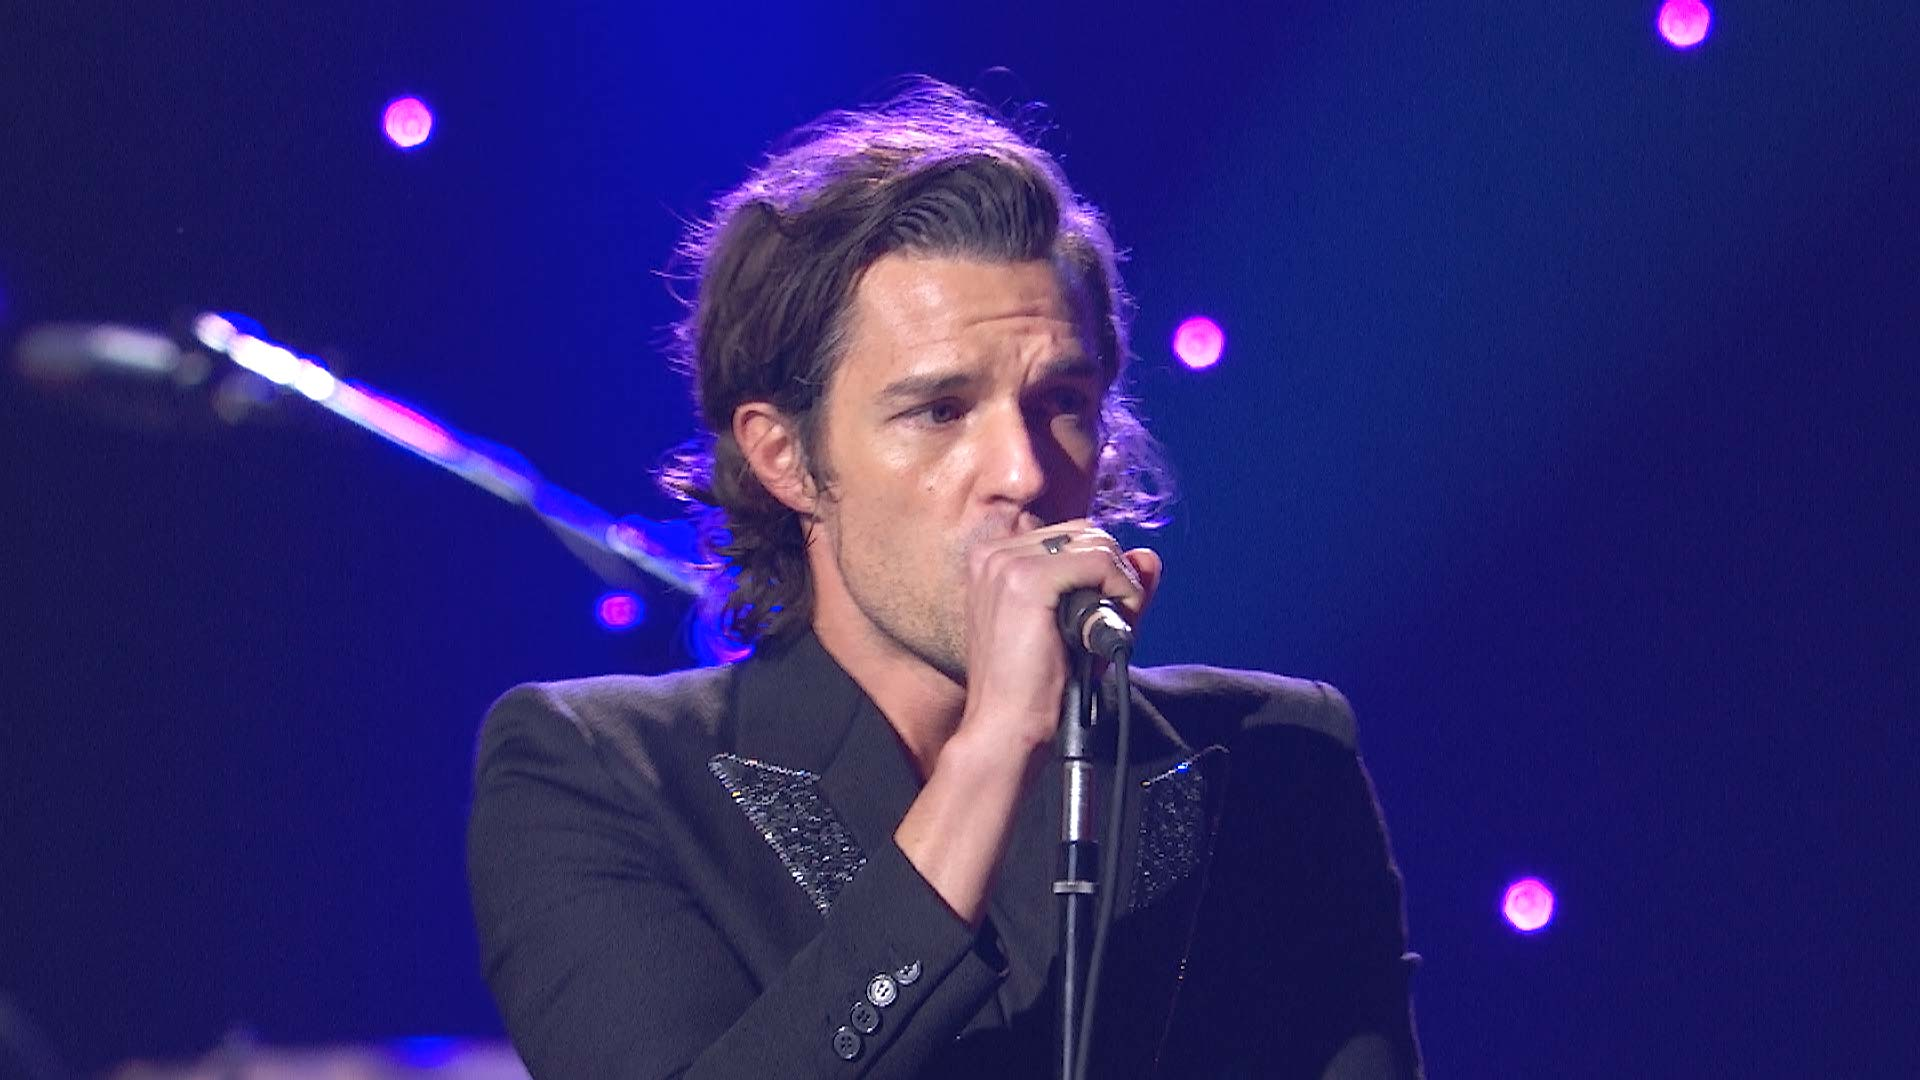 Brandon Flowers Mormonism The Mormon Church Beliefs Religion Mormonwiki